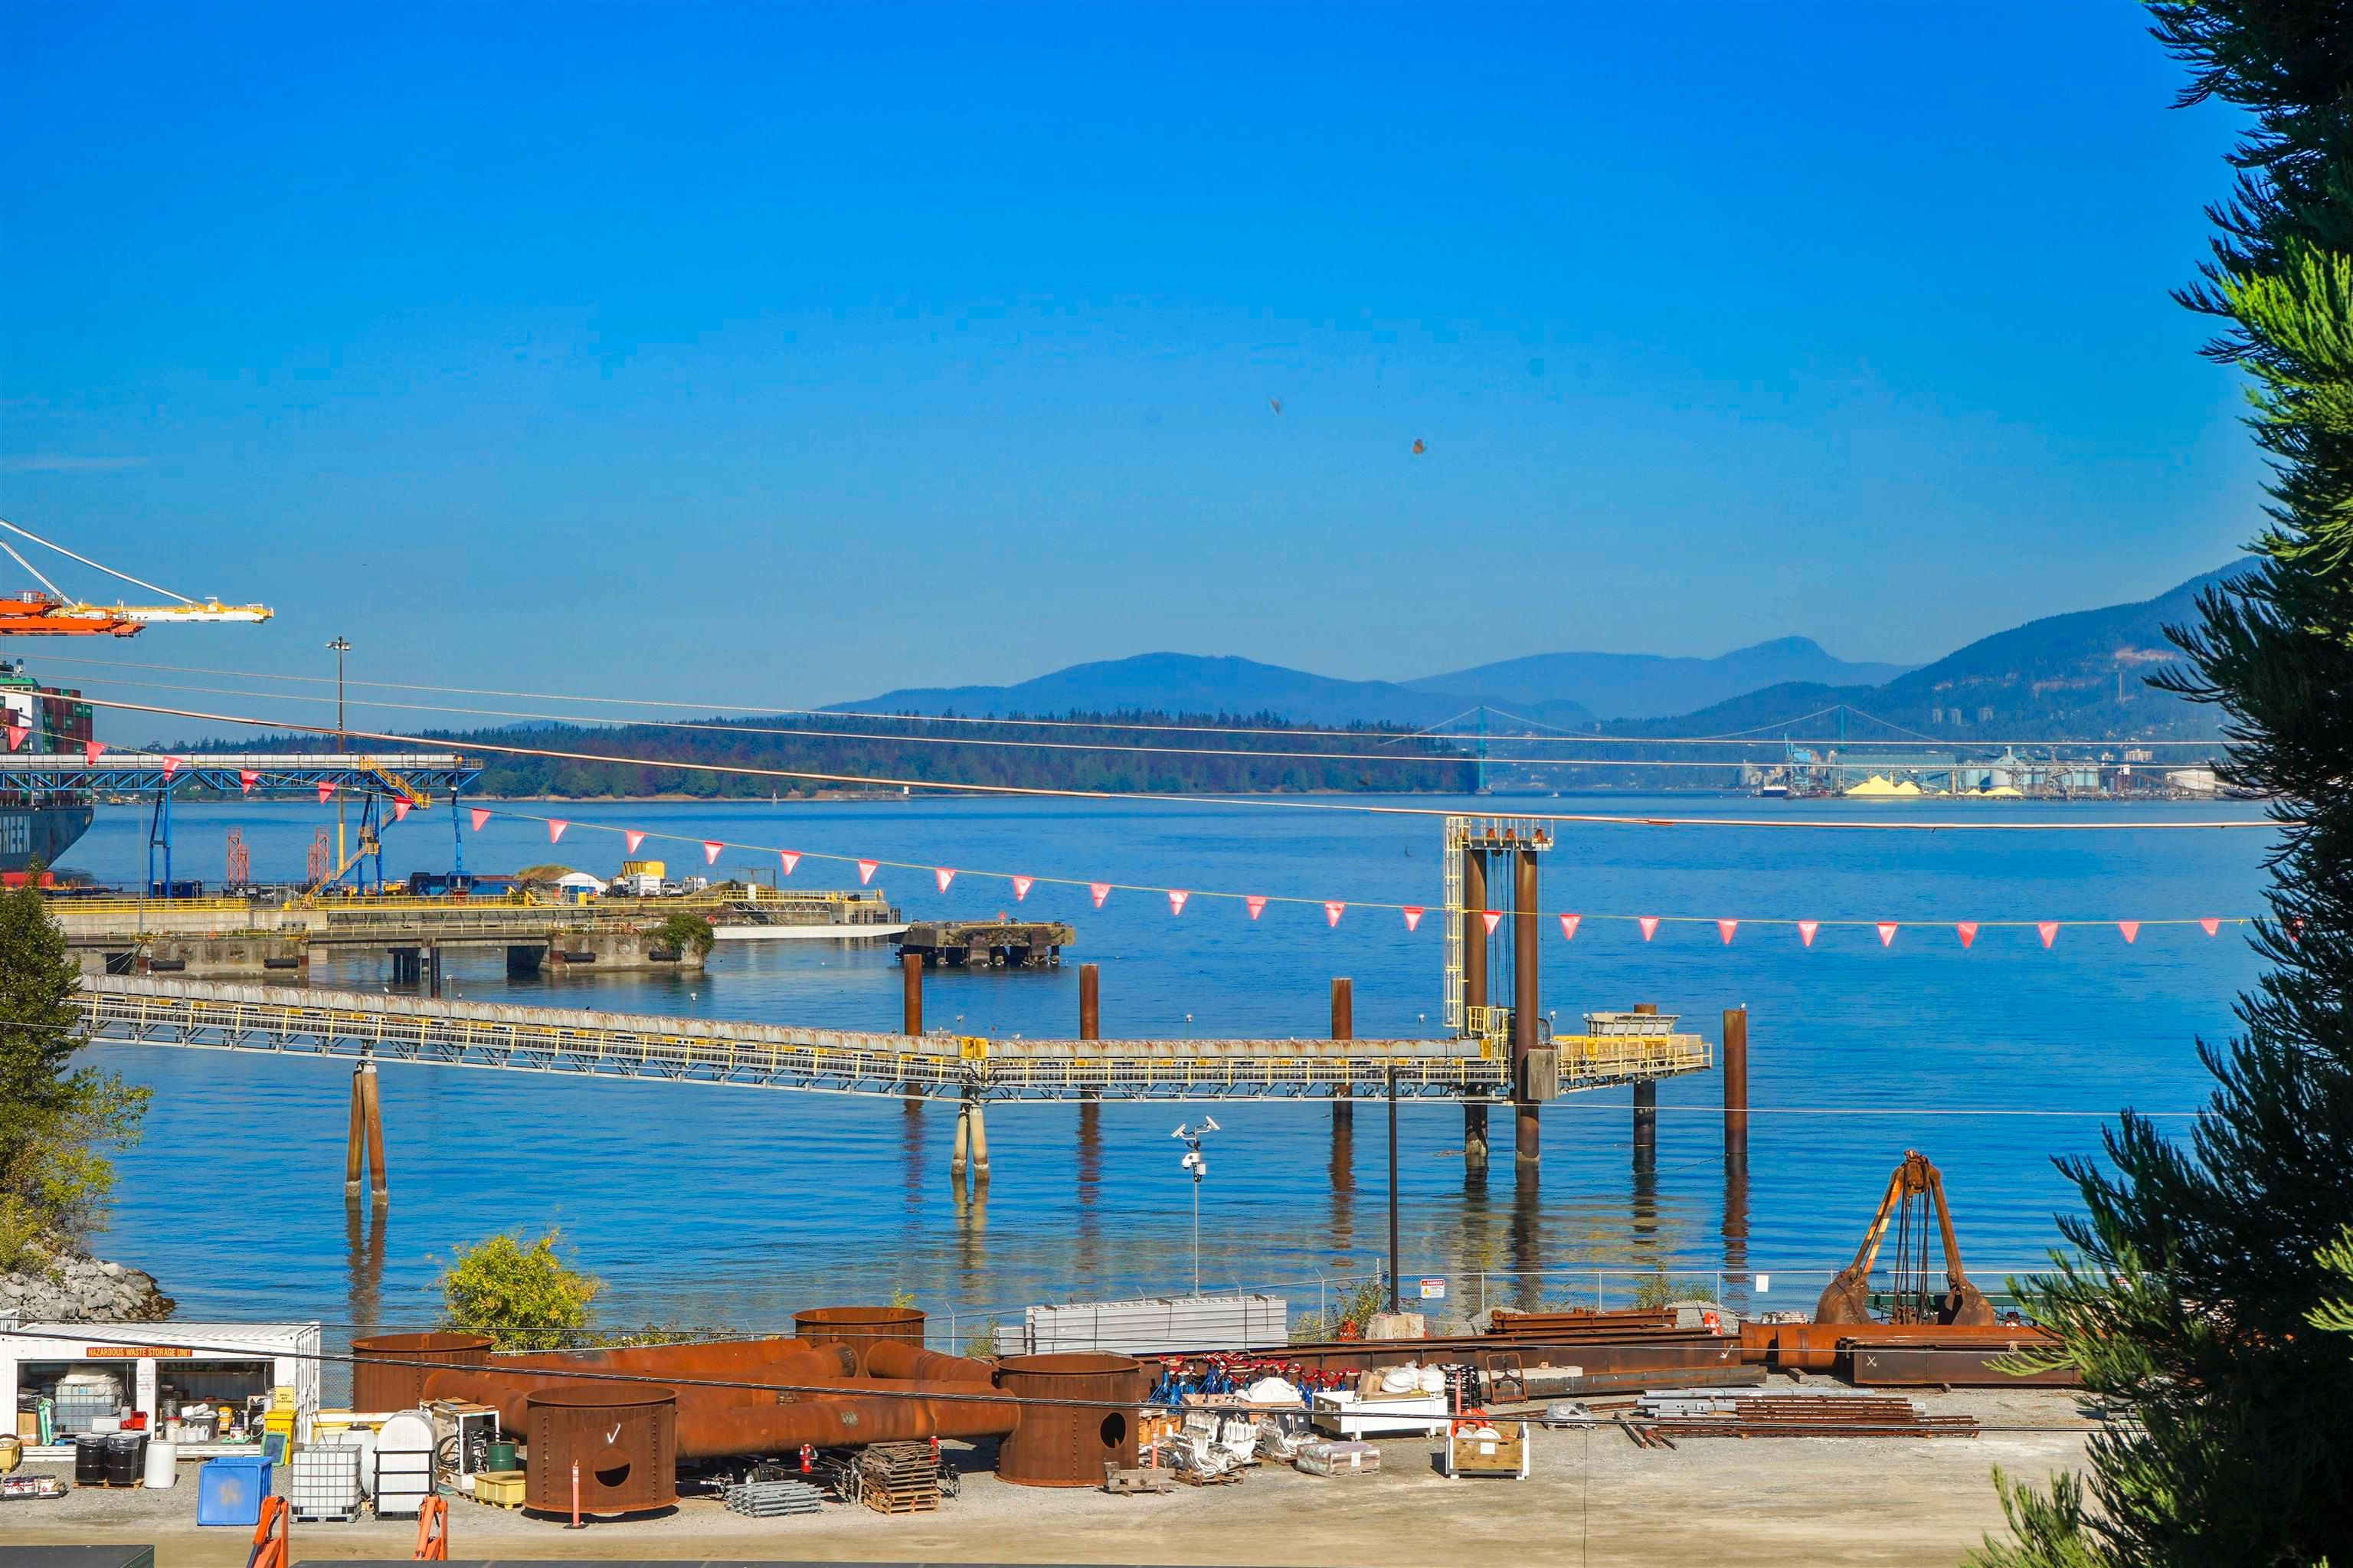 """Main Photo: 304 2159 WALL Street in Vancouver: Hastings Condo for sale in """"WALL COURT"""" (Vancouver East)  : MLS®# R2611907"""